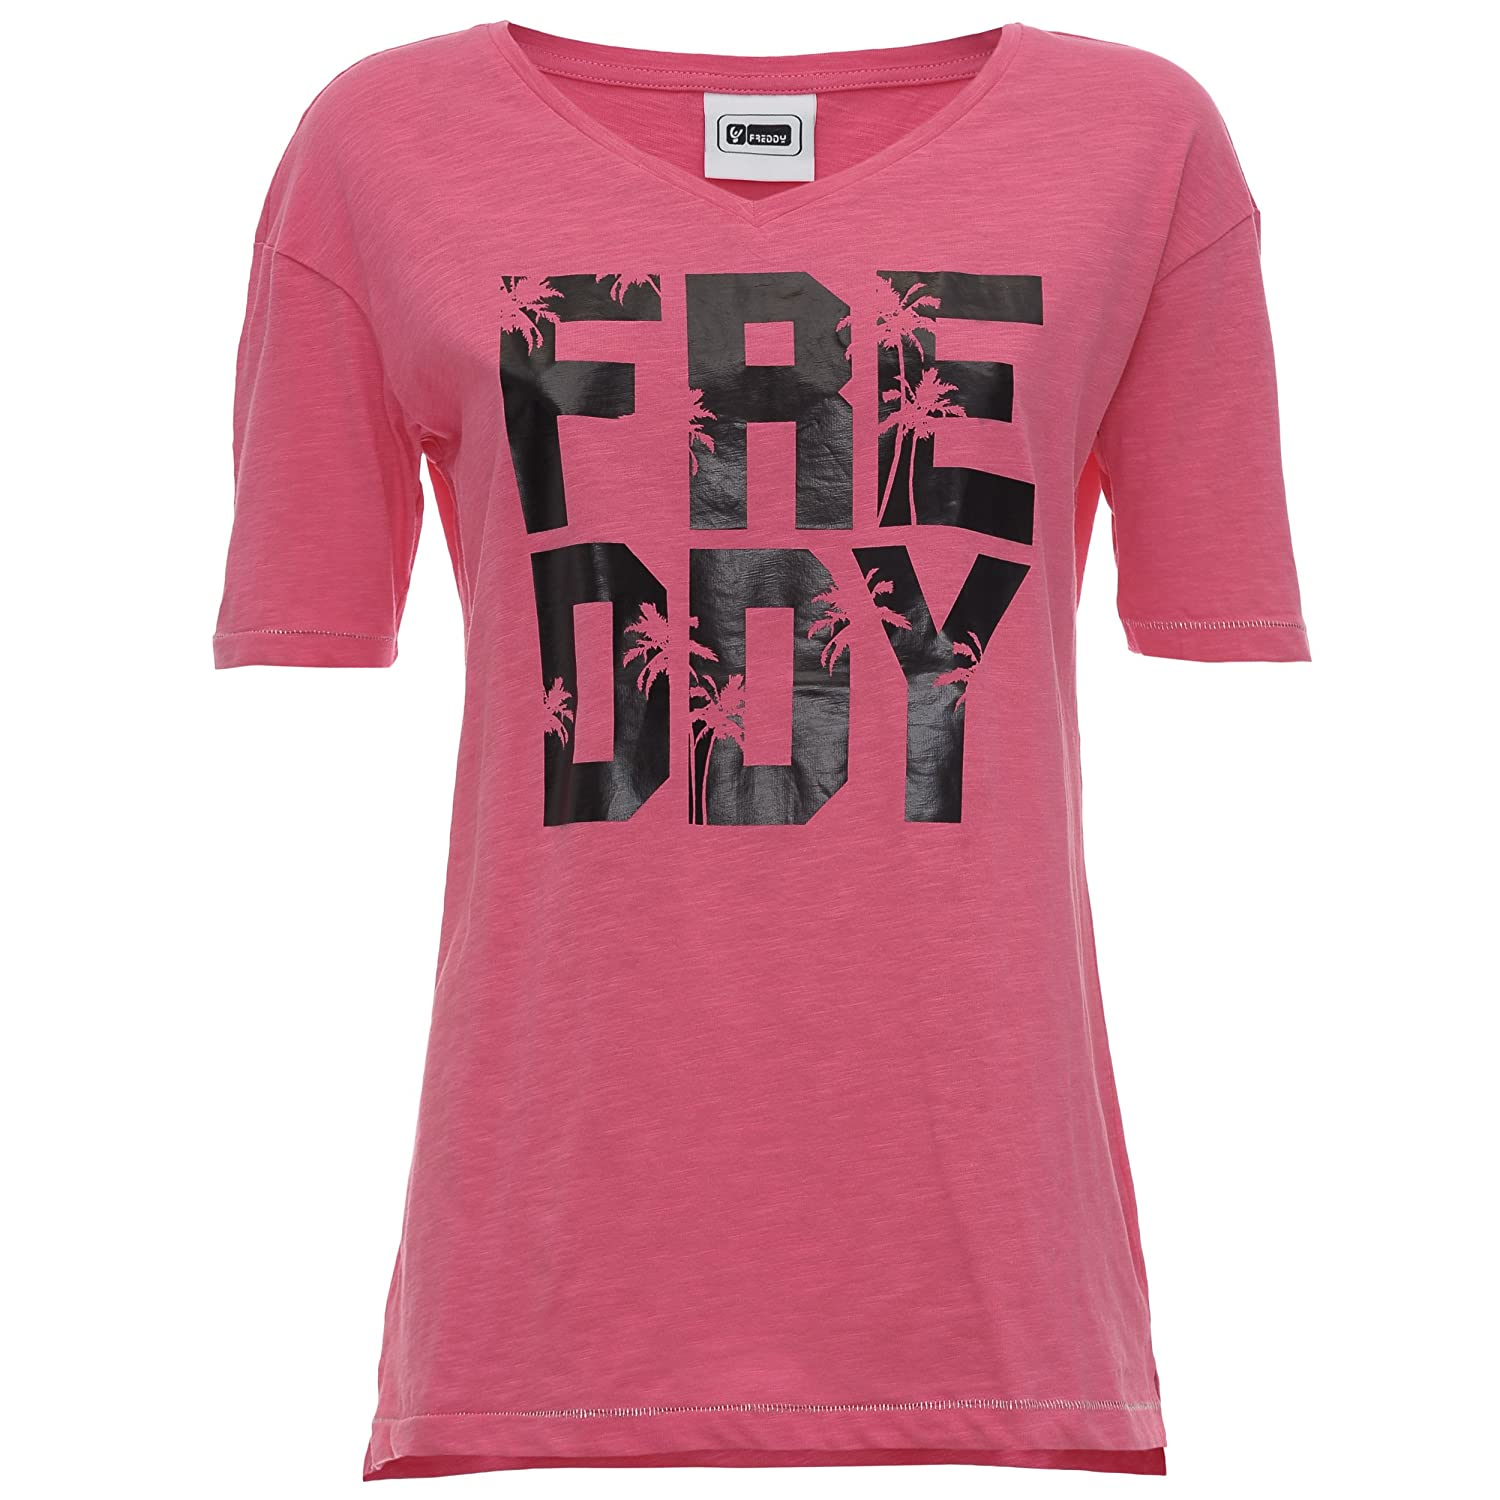 FREDDY S7wcst1, T-Shirt Donna